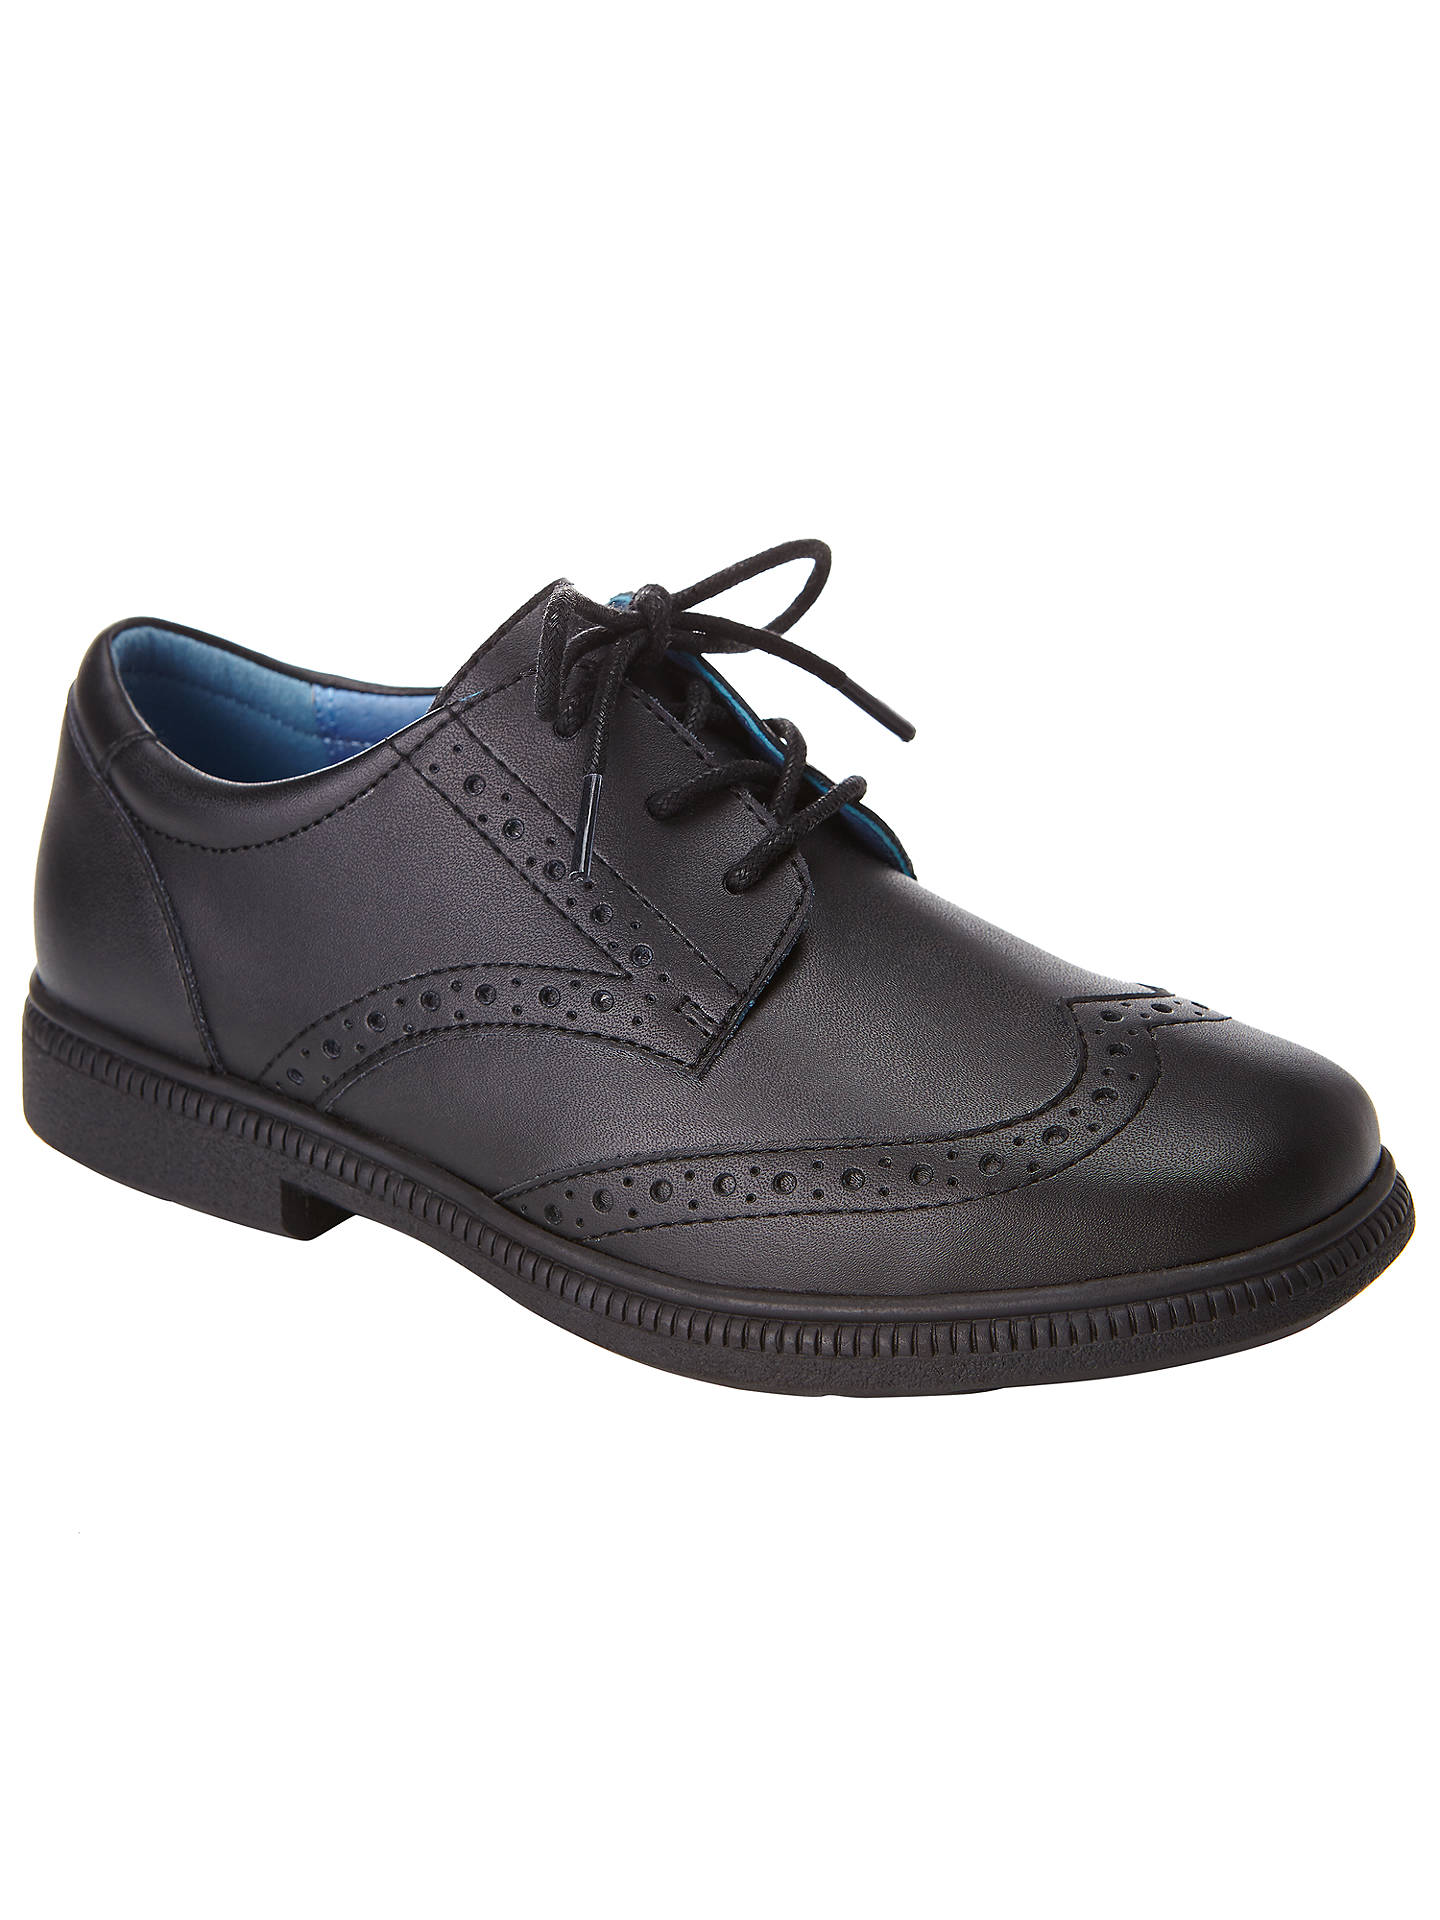 BuyJohn Lewis & Partners Chancery Laced Brogues Shoes, Black, 13 Jnr Online at johnlewis.com